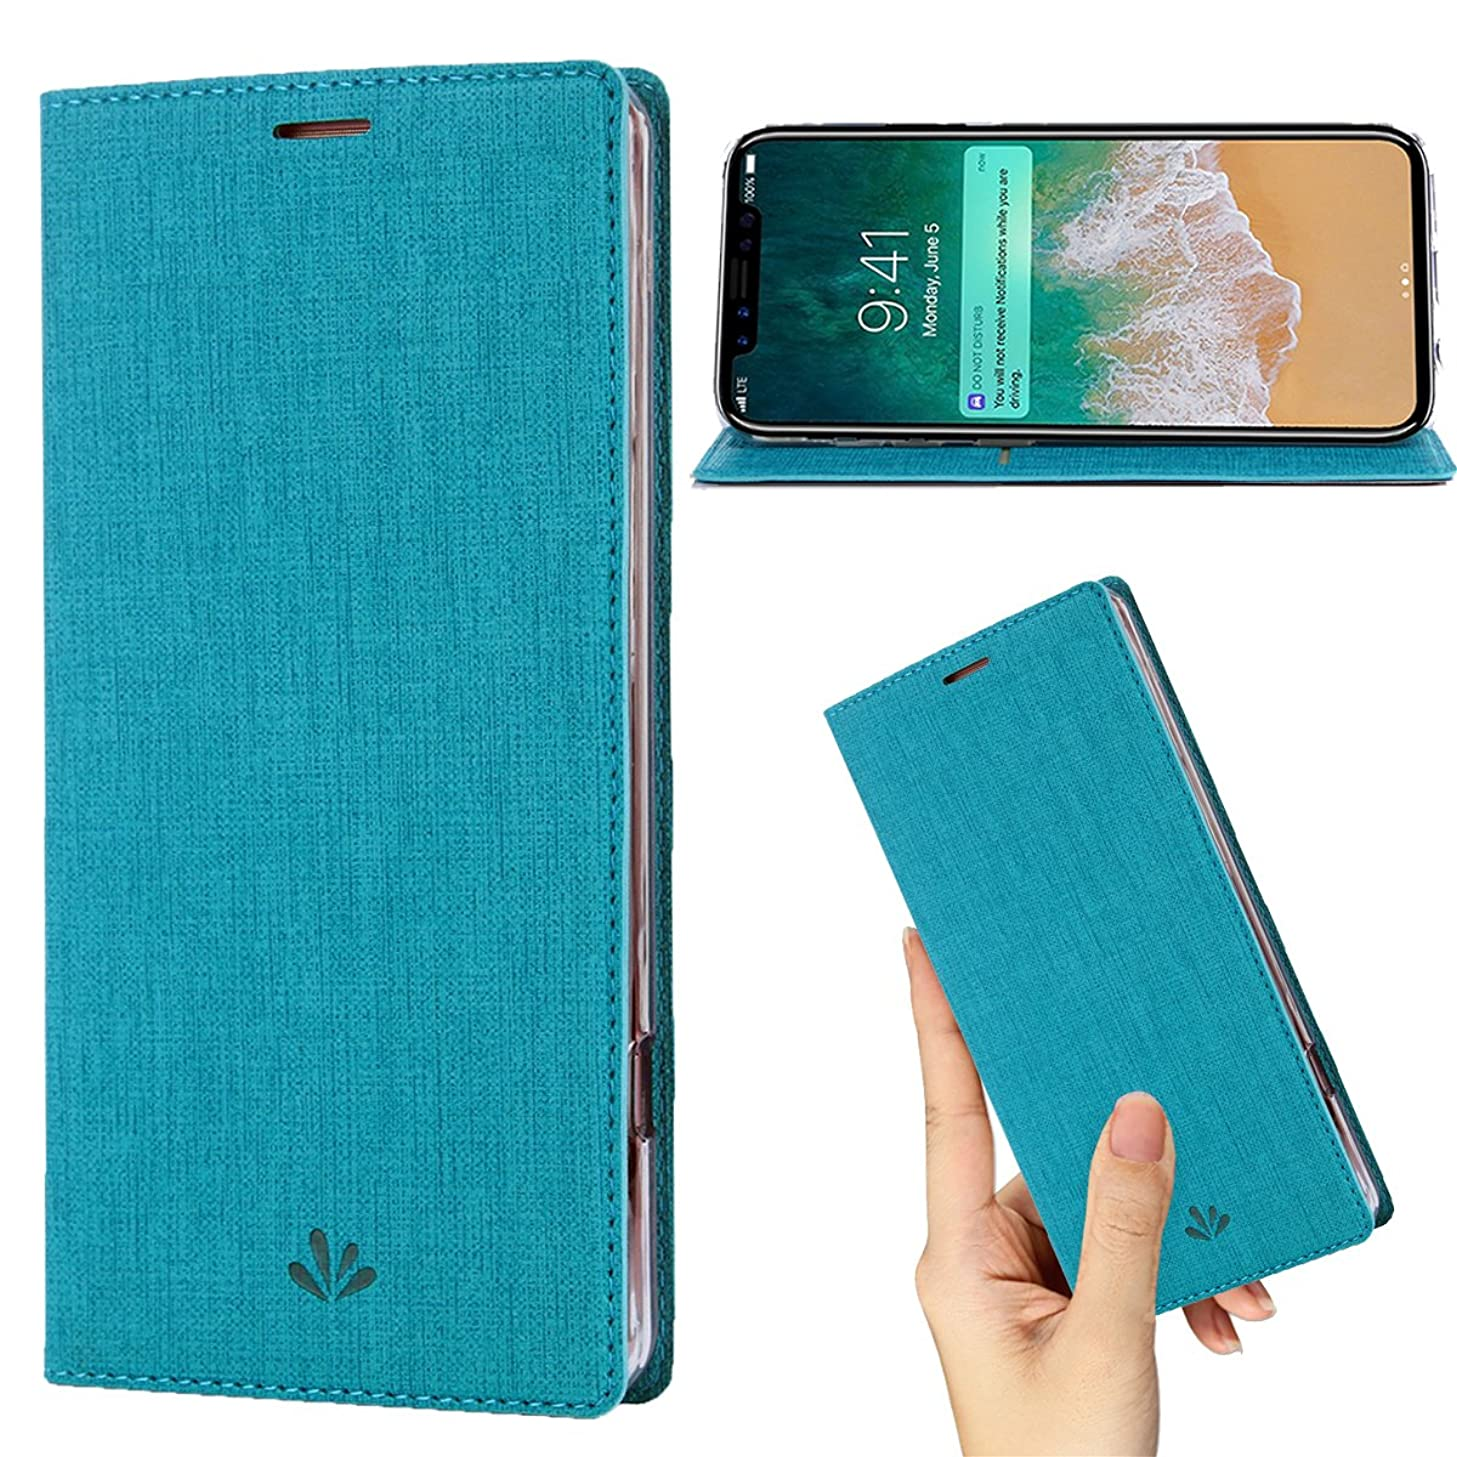 DLHLLC iPhone Xs Case,iPhone X Case,Premium Flip Leather Wallet Phone Case Kickstand Stand Card Slot Full Body Shockproof Protective Cover Inner Clear TPU Thin Case for Apple iPhone Xs 2018 (Blue)